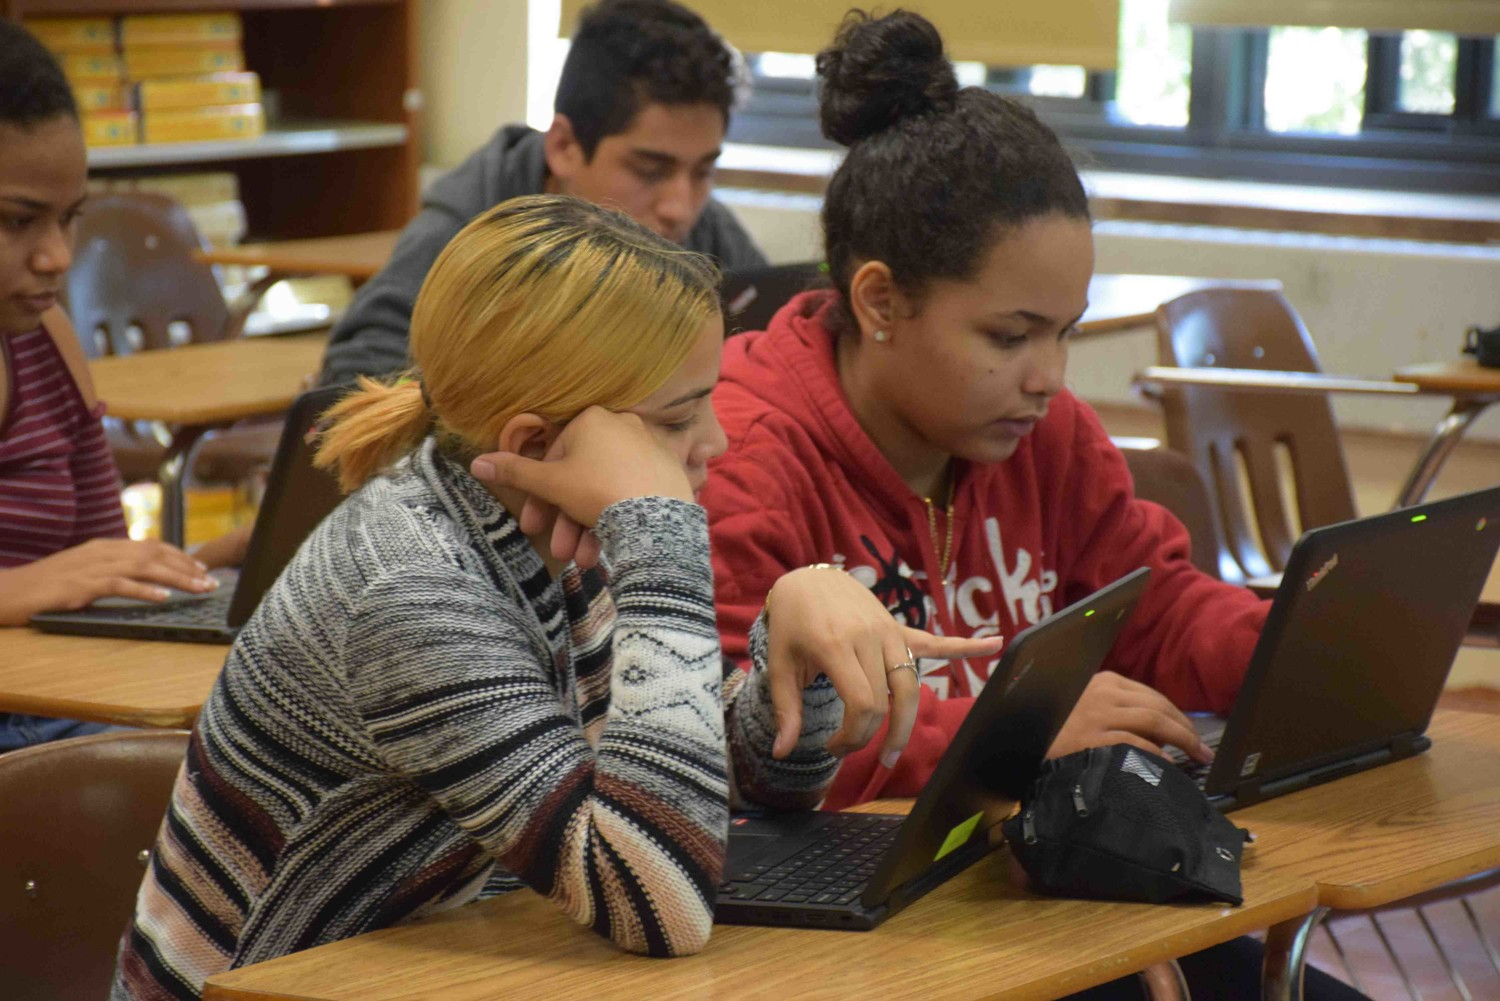 Freeport High School students received new Chromebooks in September as part of the state's Smart Schools Bond programs.